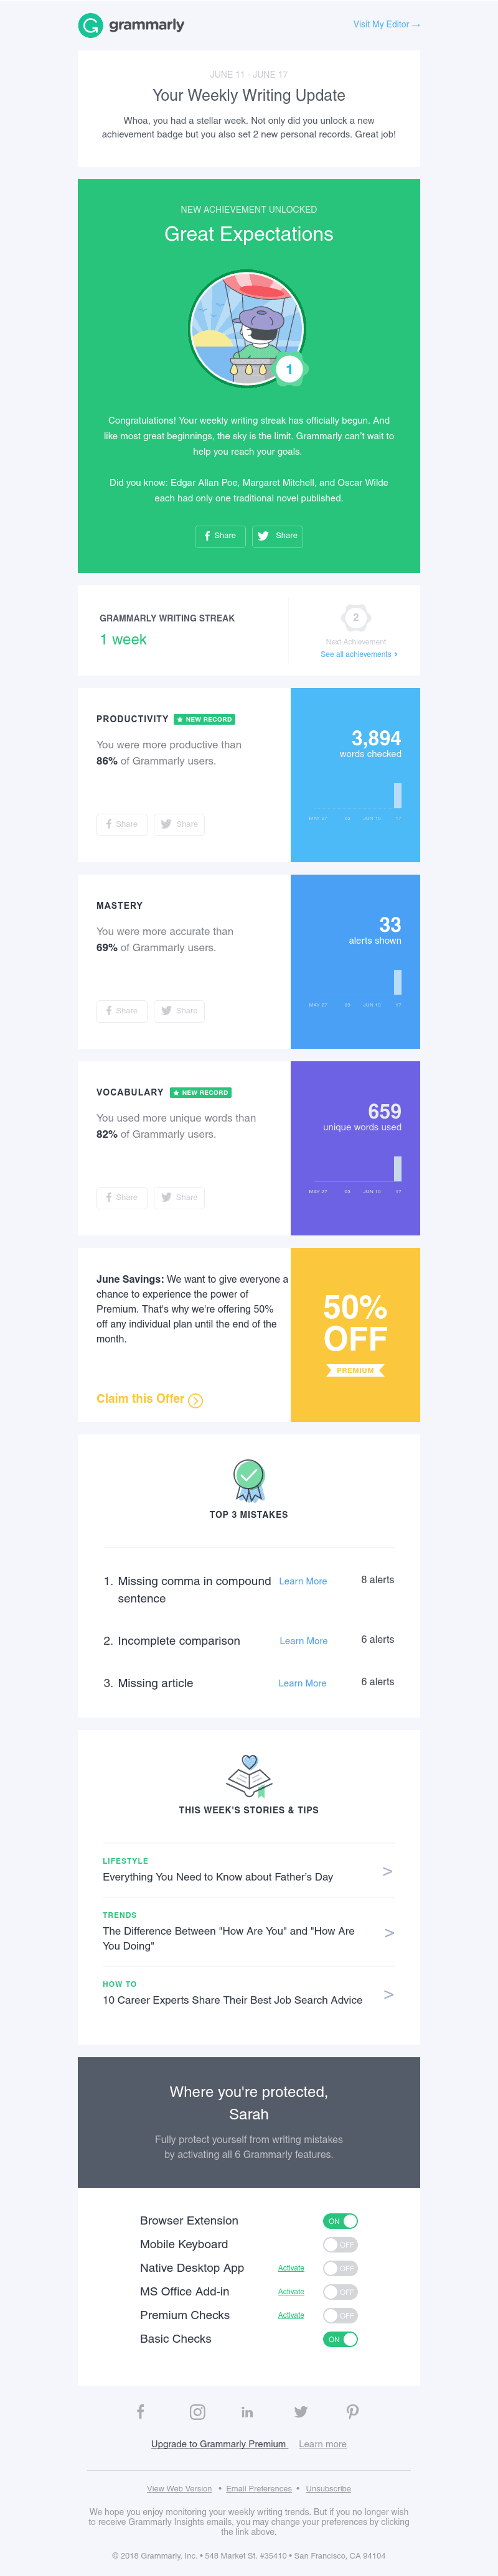 Grammarly unlocking achievements email